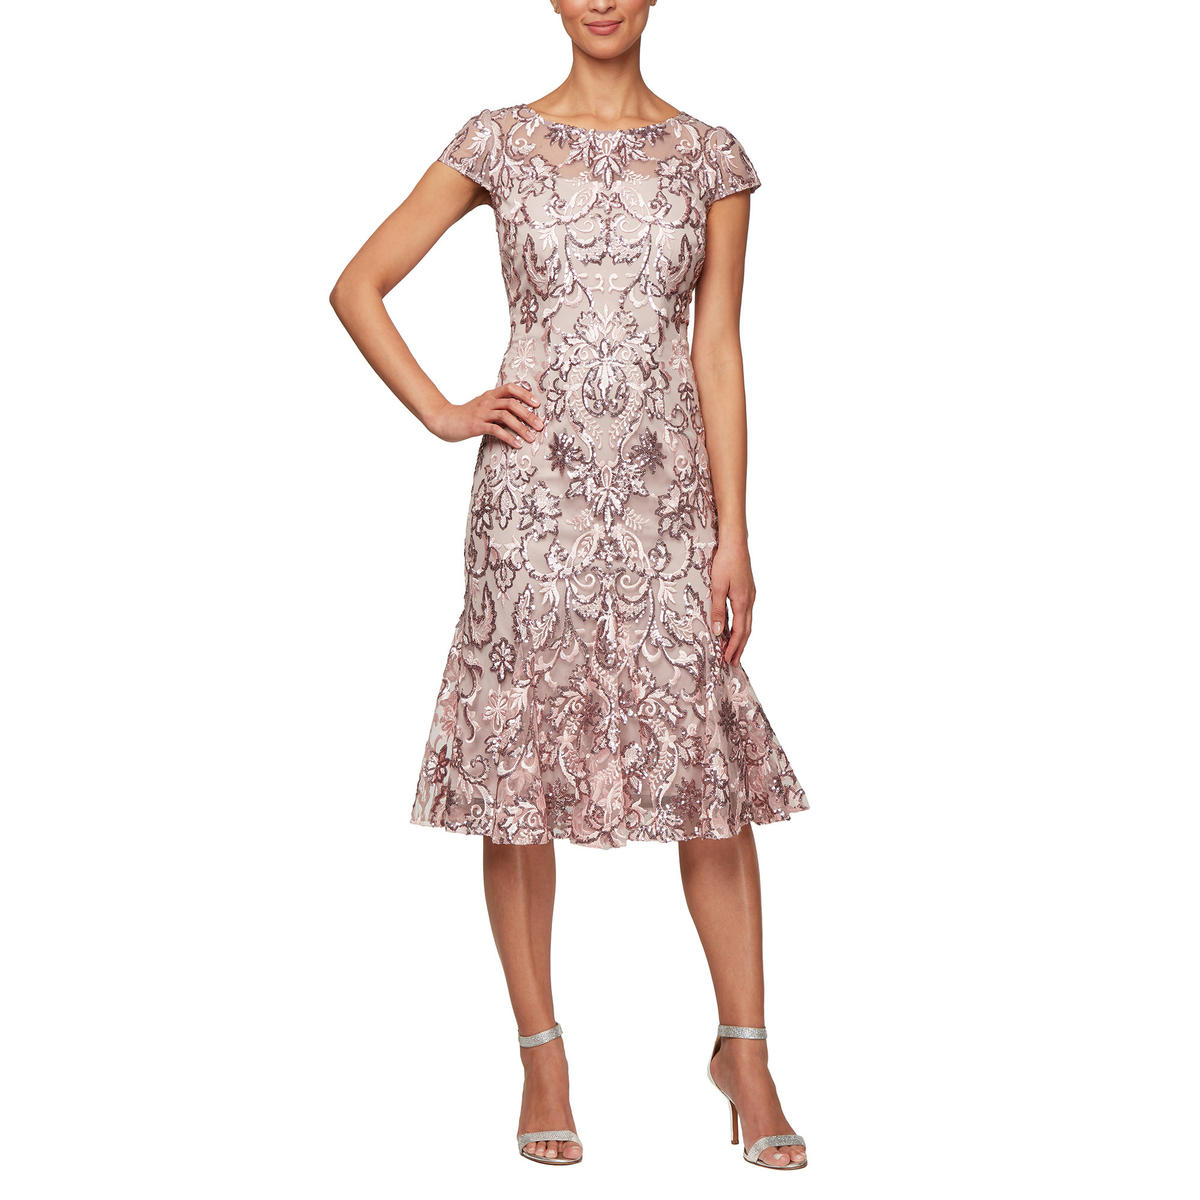 ALEX APPAREL GROUP INC - Mesh Embroidered Dress-Cap Sleeve